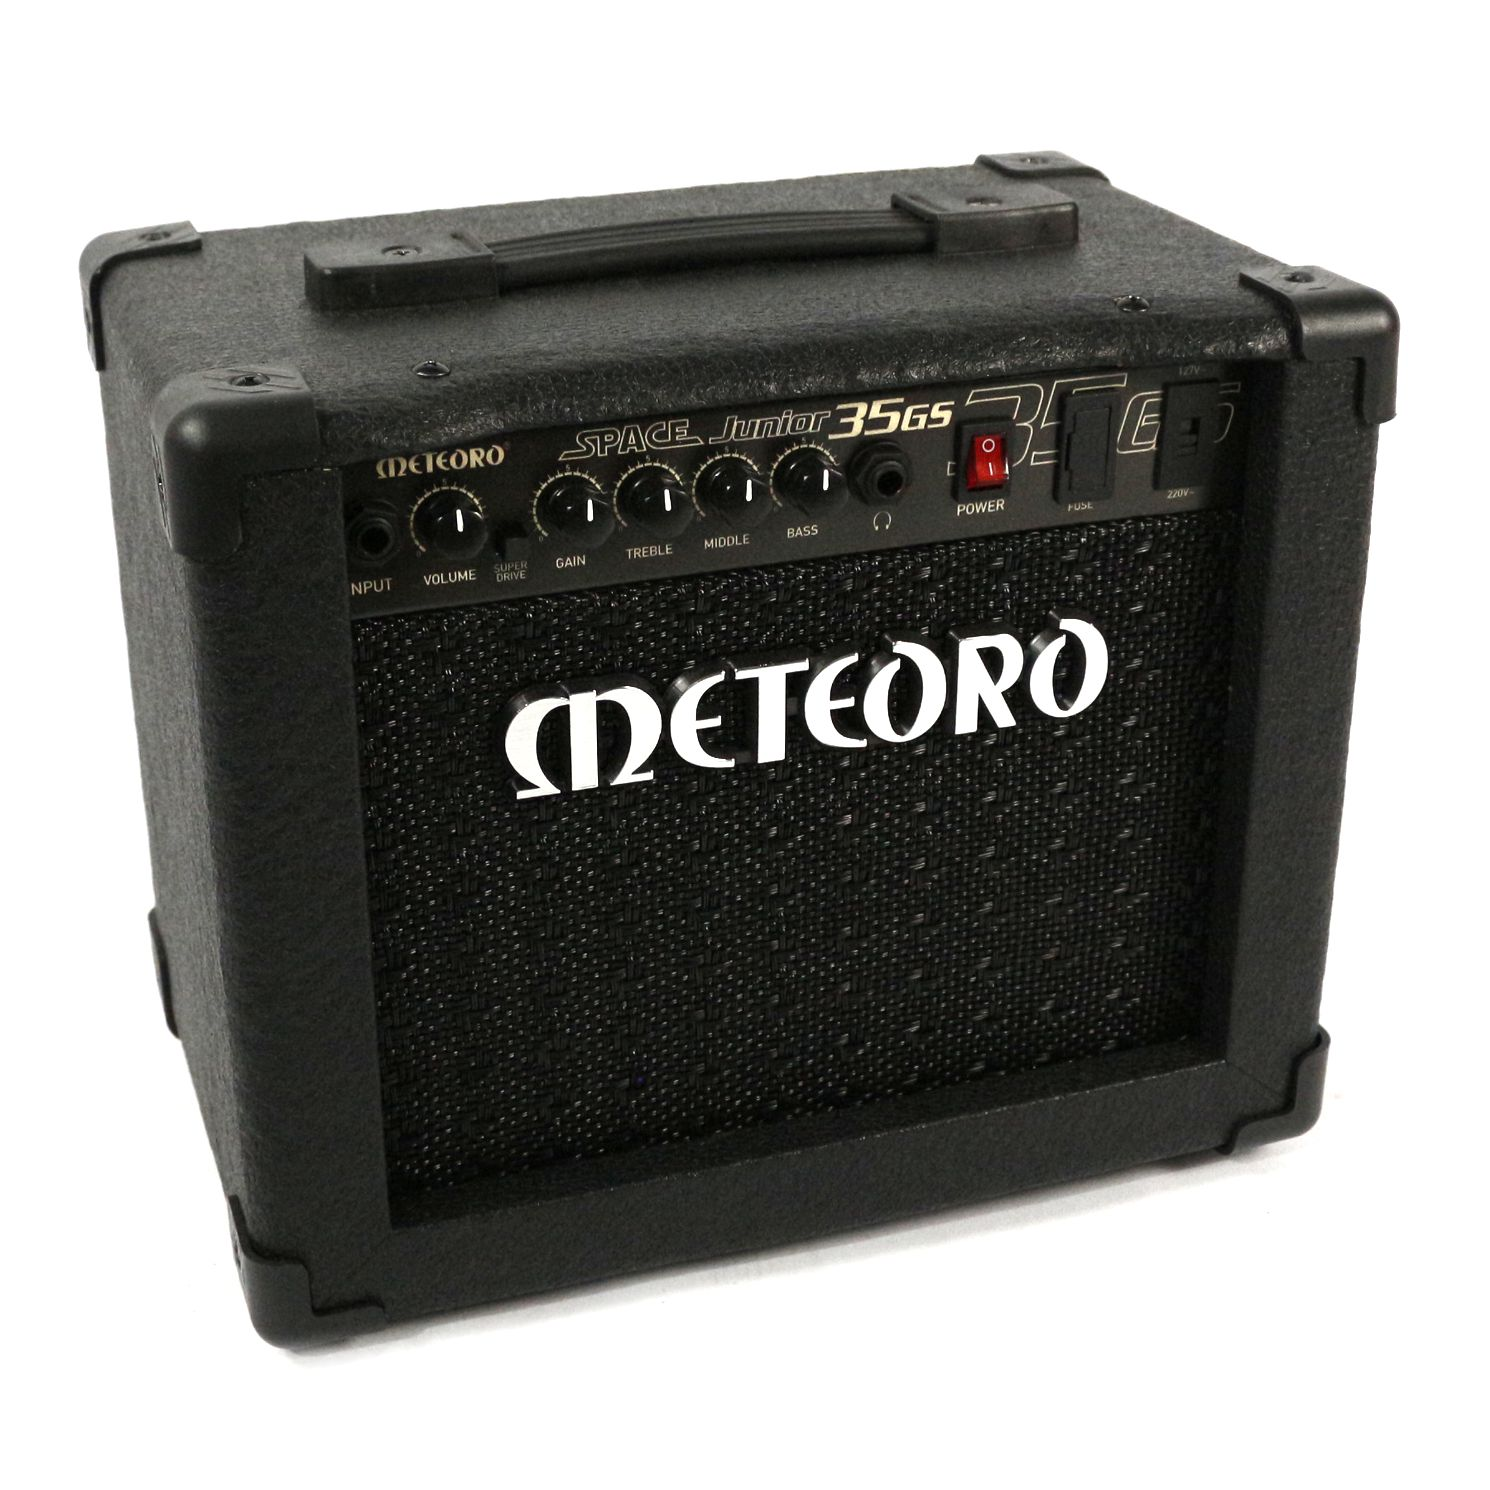 Cubo Amplificador para Guitarra Meteoro Space Júnior 35GS 35W